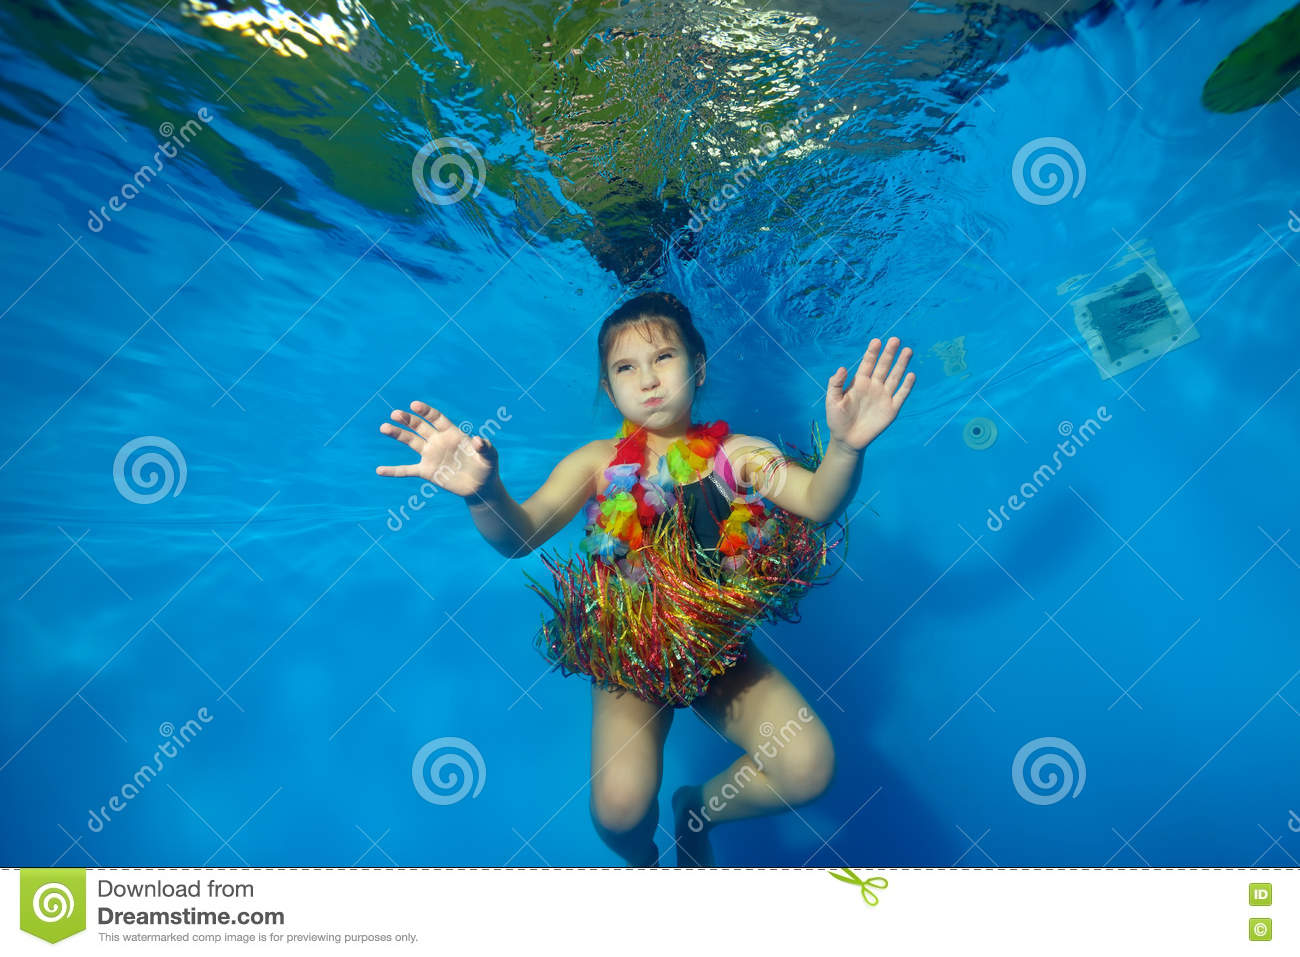 Happy Little Girl Swimming And Dancing Underwater In The Pool In